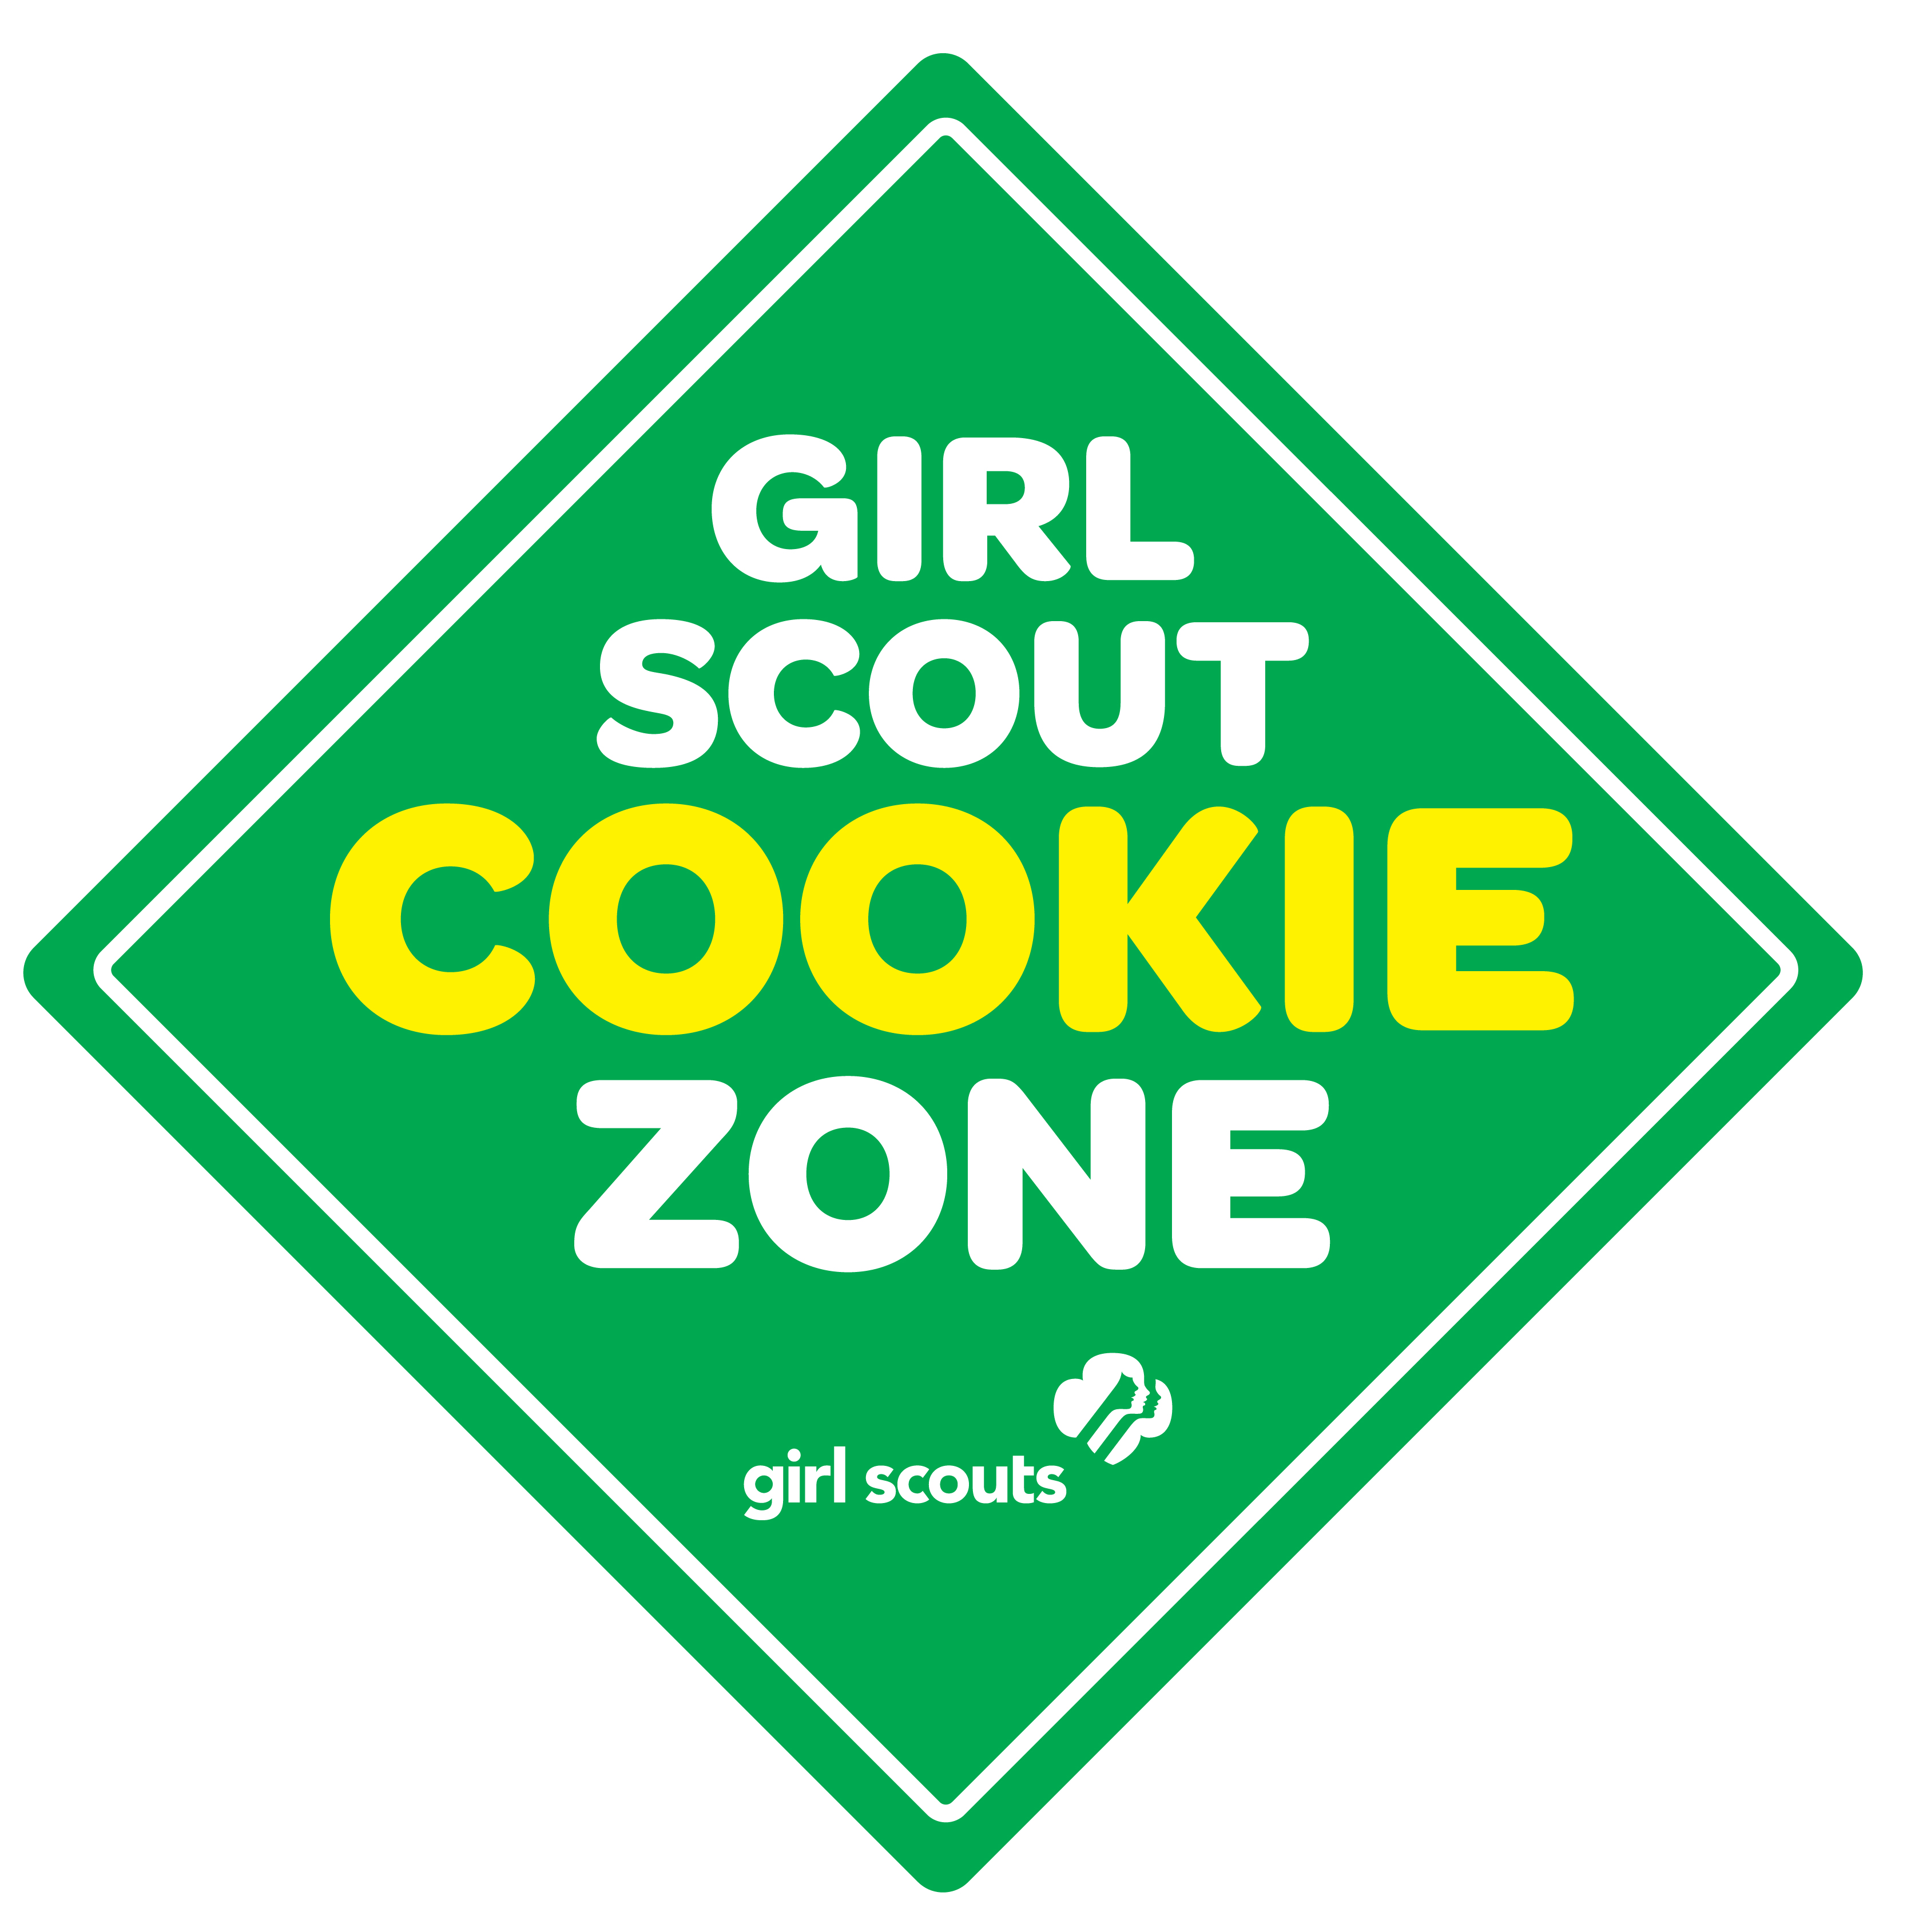 Booth Sale Gs Cookie Girl .-Booth Sale Gs Cookie Girl .-6